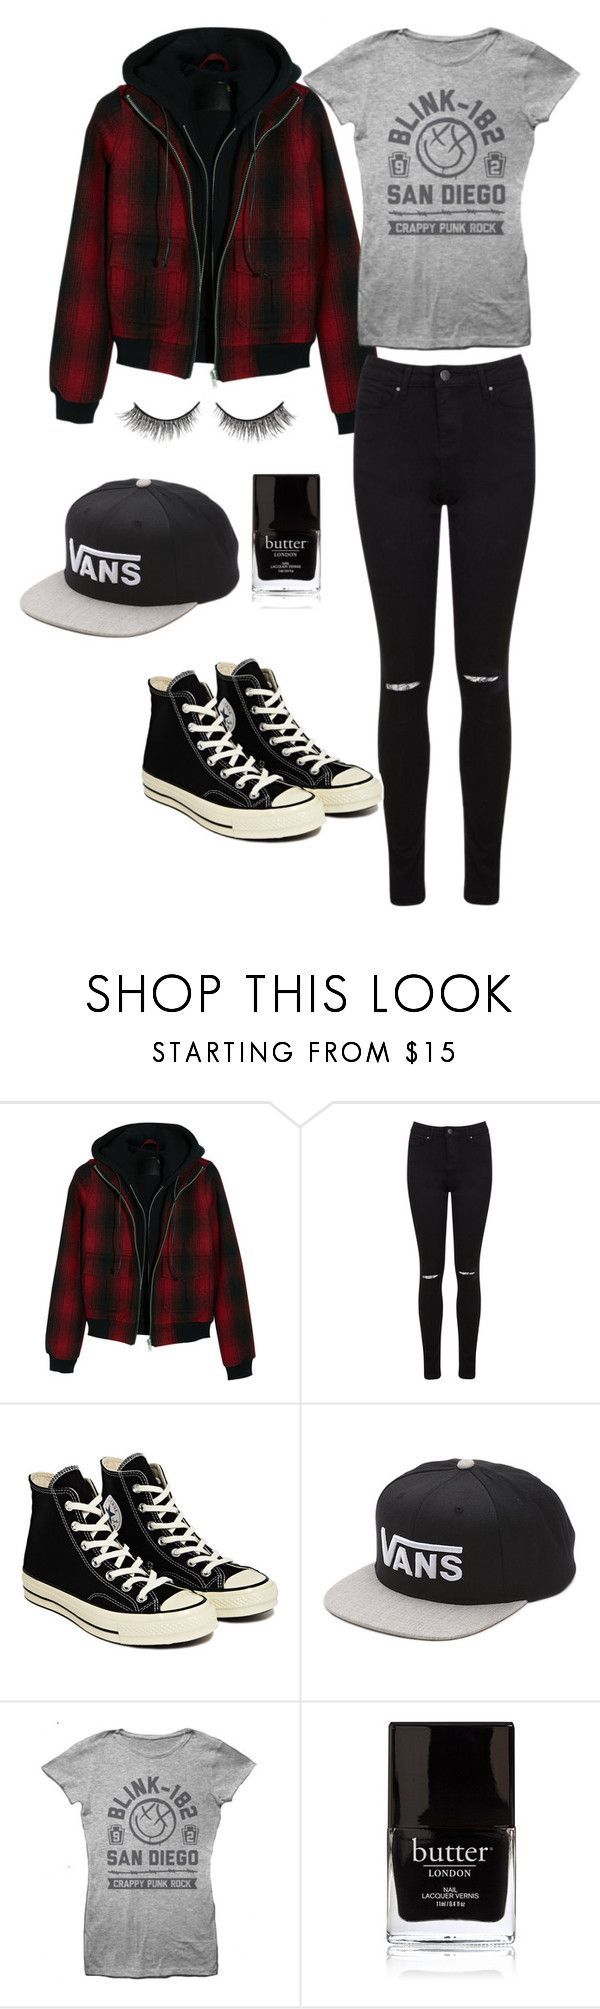 """""""Michael Clifford Inspired Outfit"""" by allinichole ❤ liked on Polyvore featuring R13, Miss Selfridge, Converse, Vans, Butter London and Rimini"""